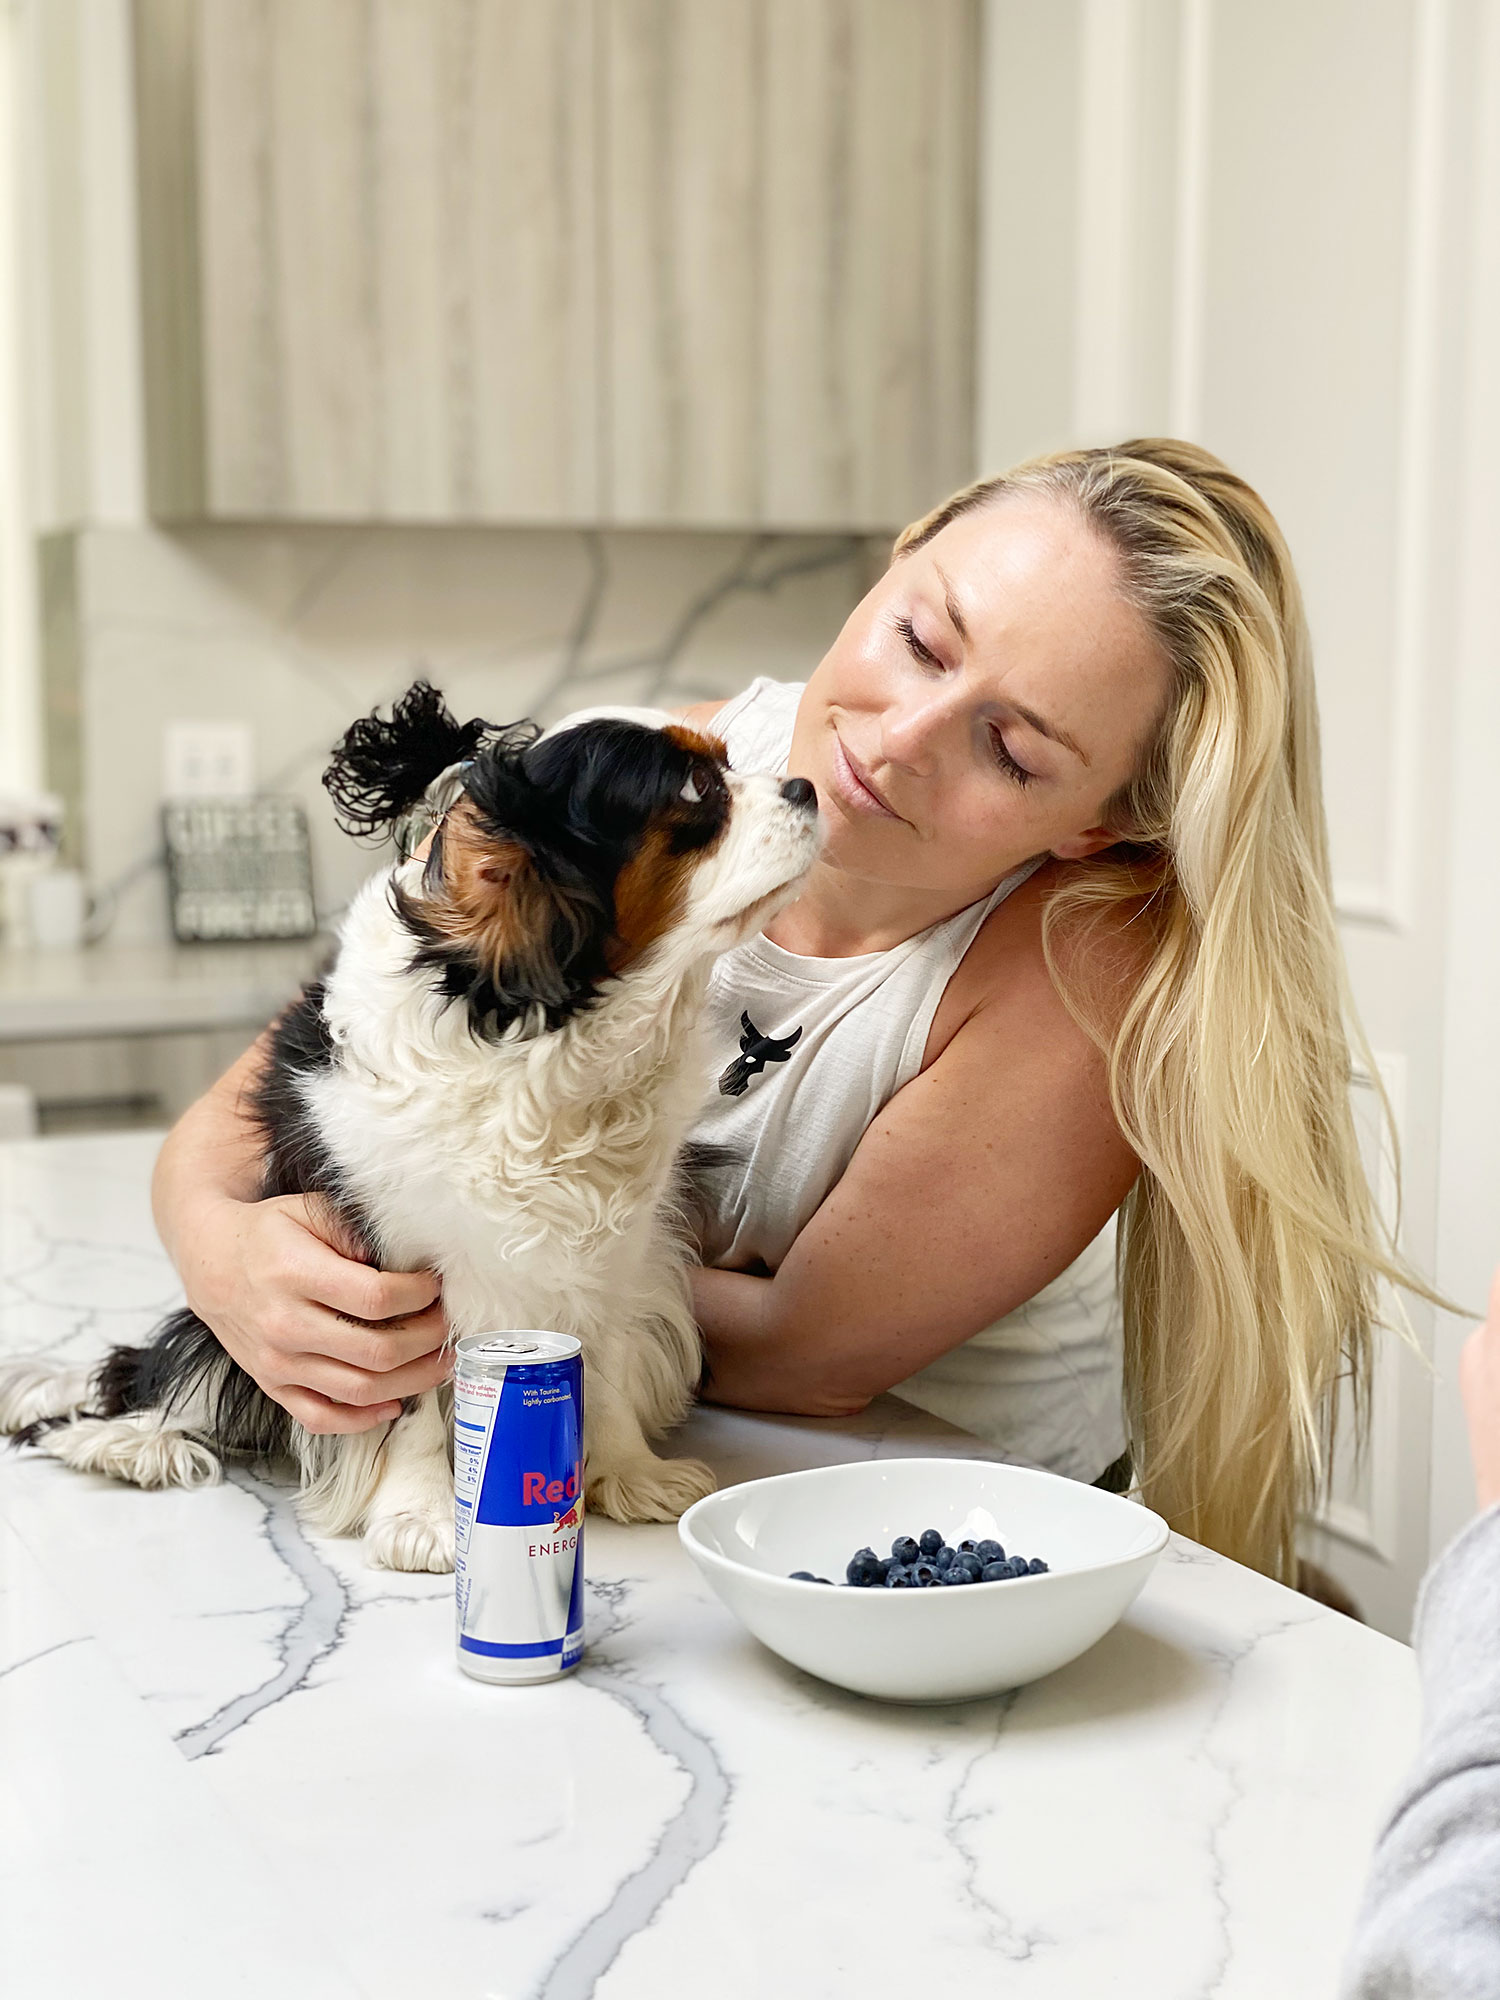 Lindsey Vonn and Her Dog Lucy How I Spend a Typical Day in Quarantine During the Coronavirus Outbreak